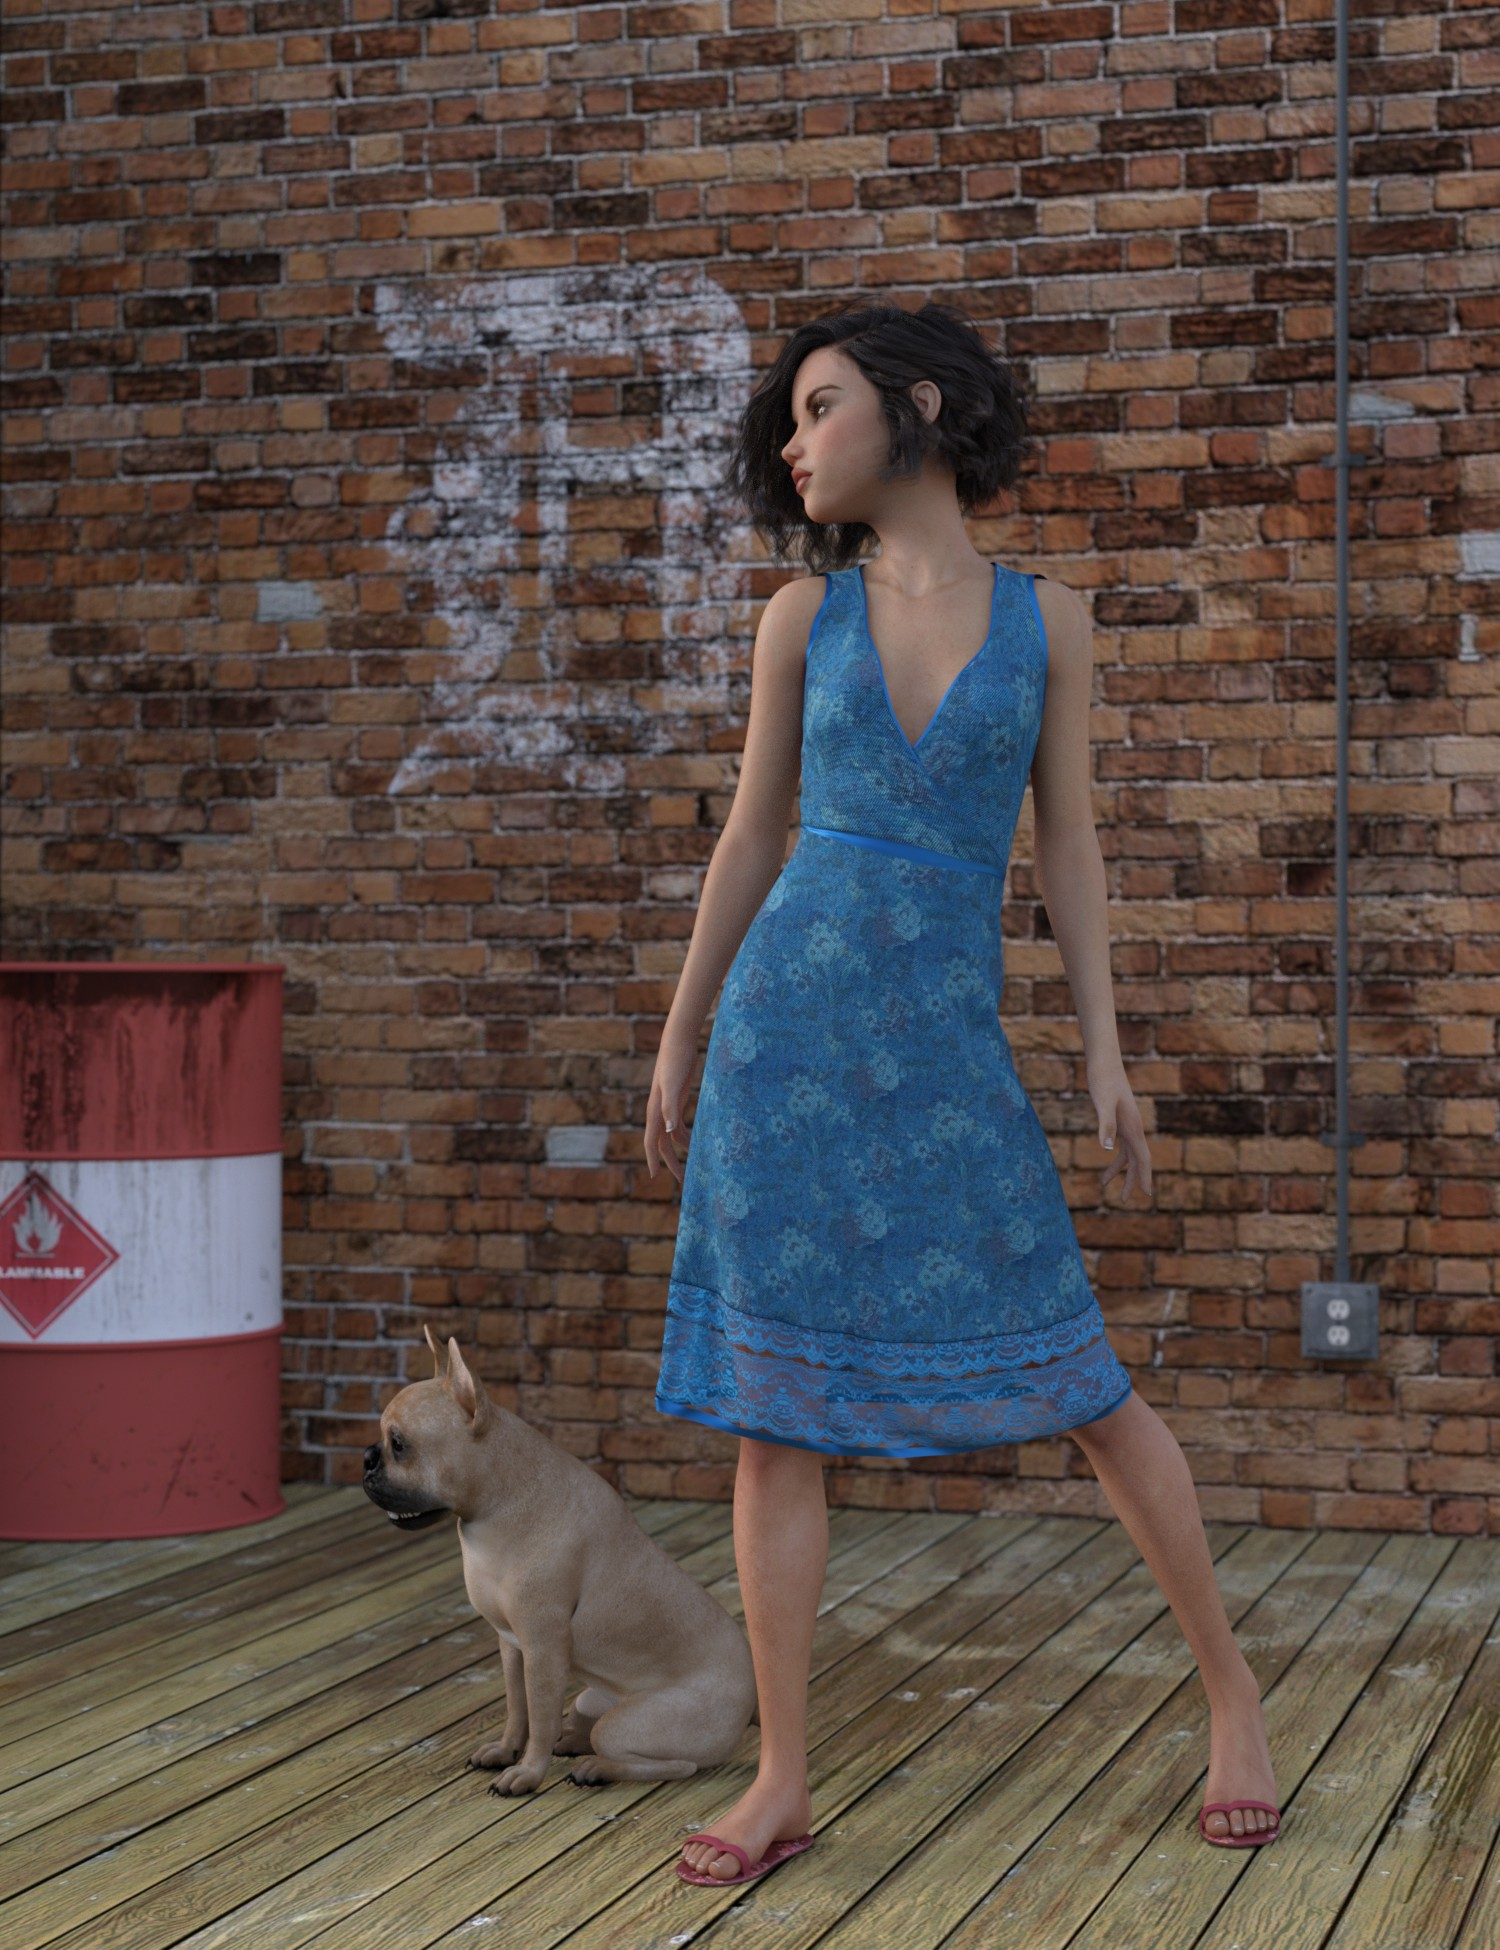 dForce Beachflower Summer Dress for Genesis 8 Female(s) by: AquariusImmersive-DreamWorld, 3D Models by Daz 3D